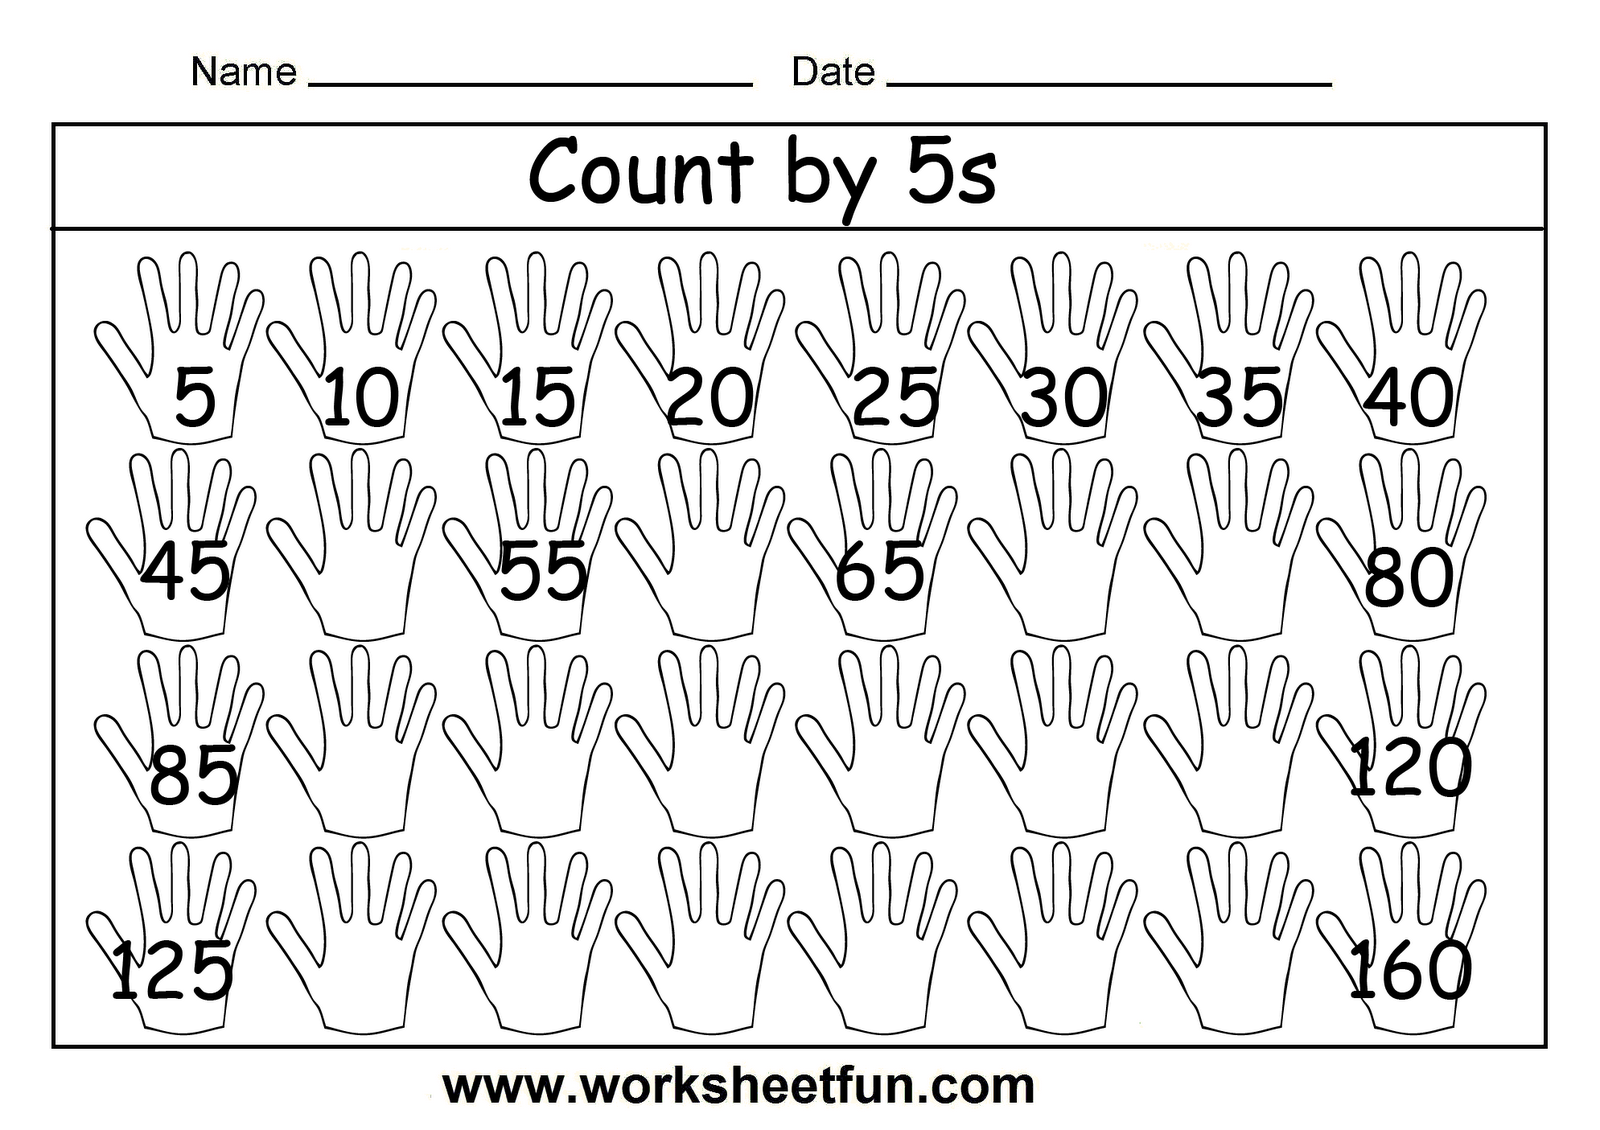 free printable math worksheets count by 5s patterns and functions math worksheets. Black Bedroom Furniture Sets. Home Design Ideas